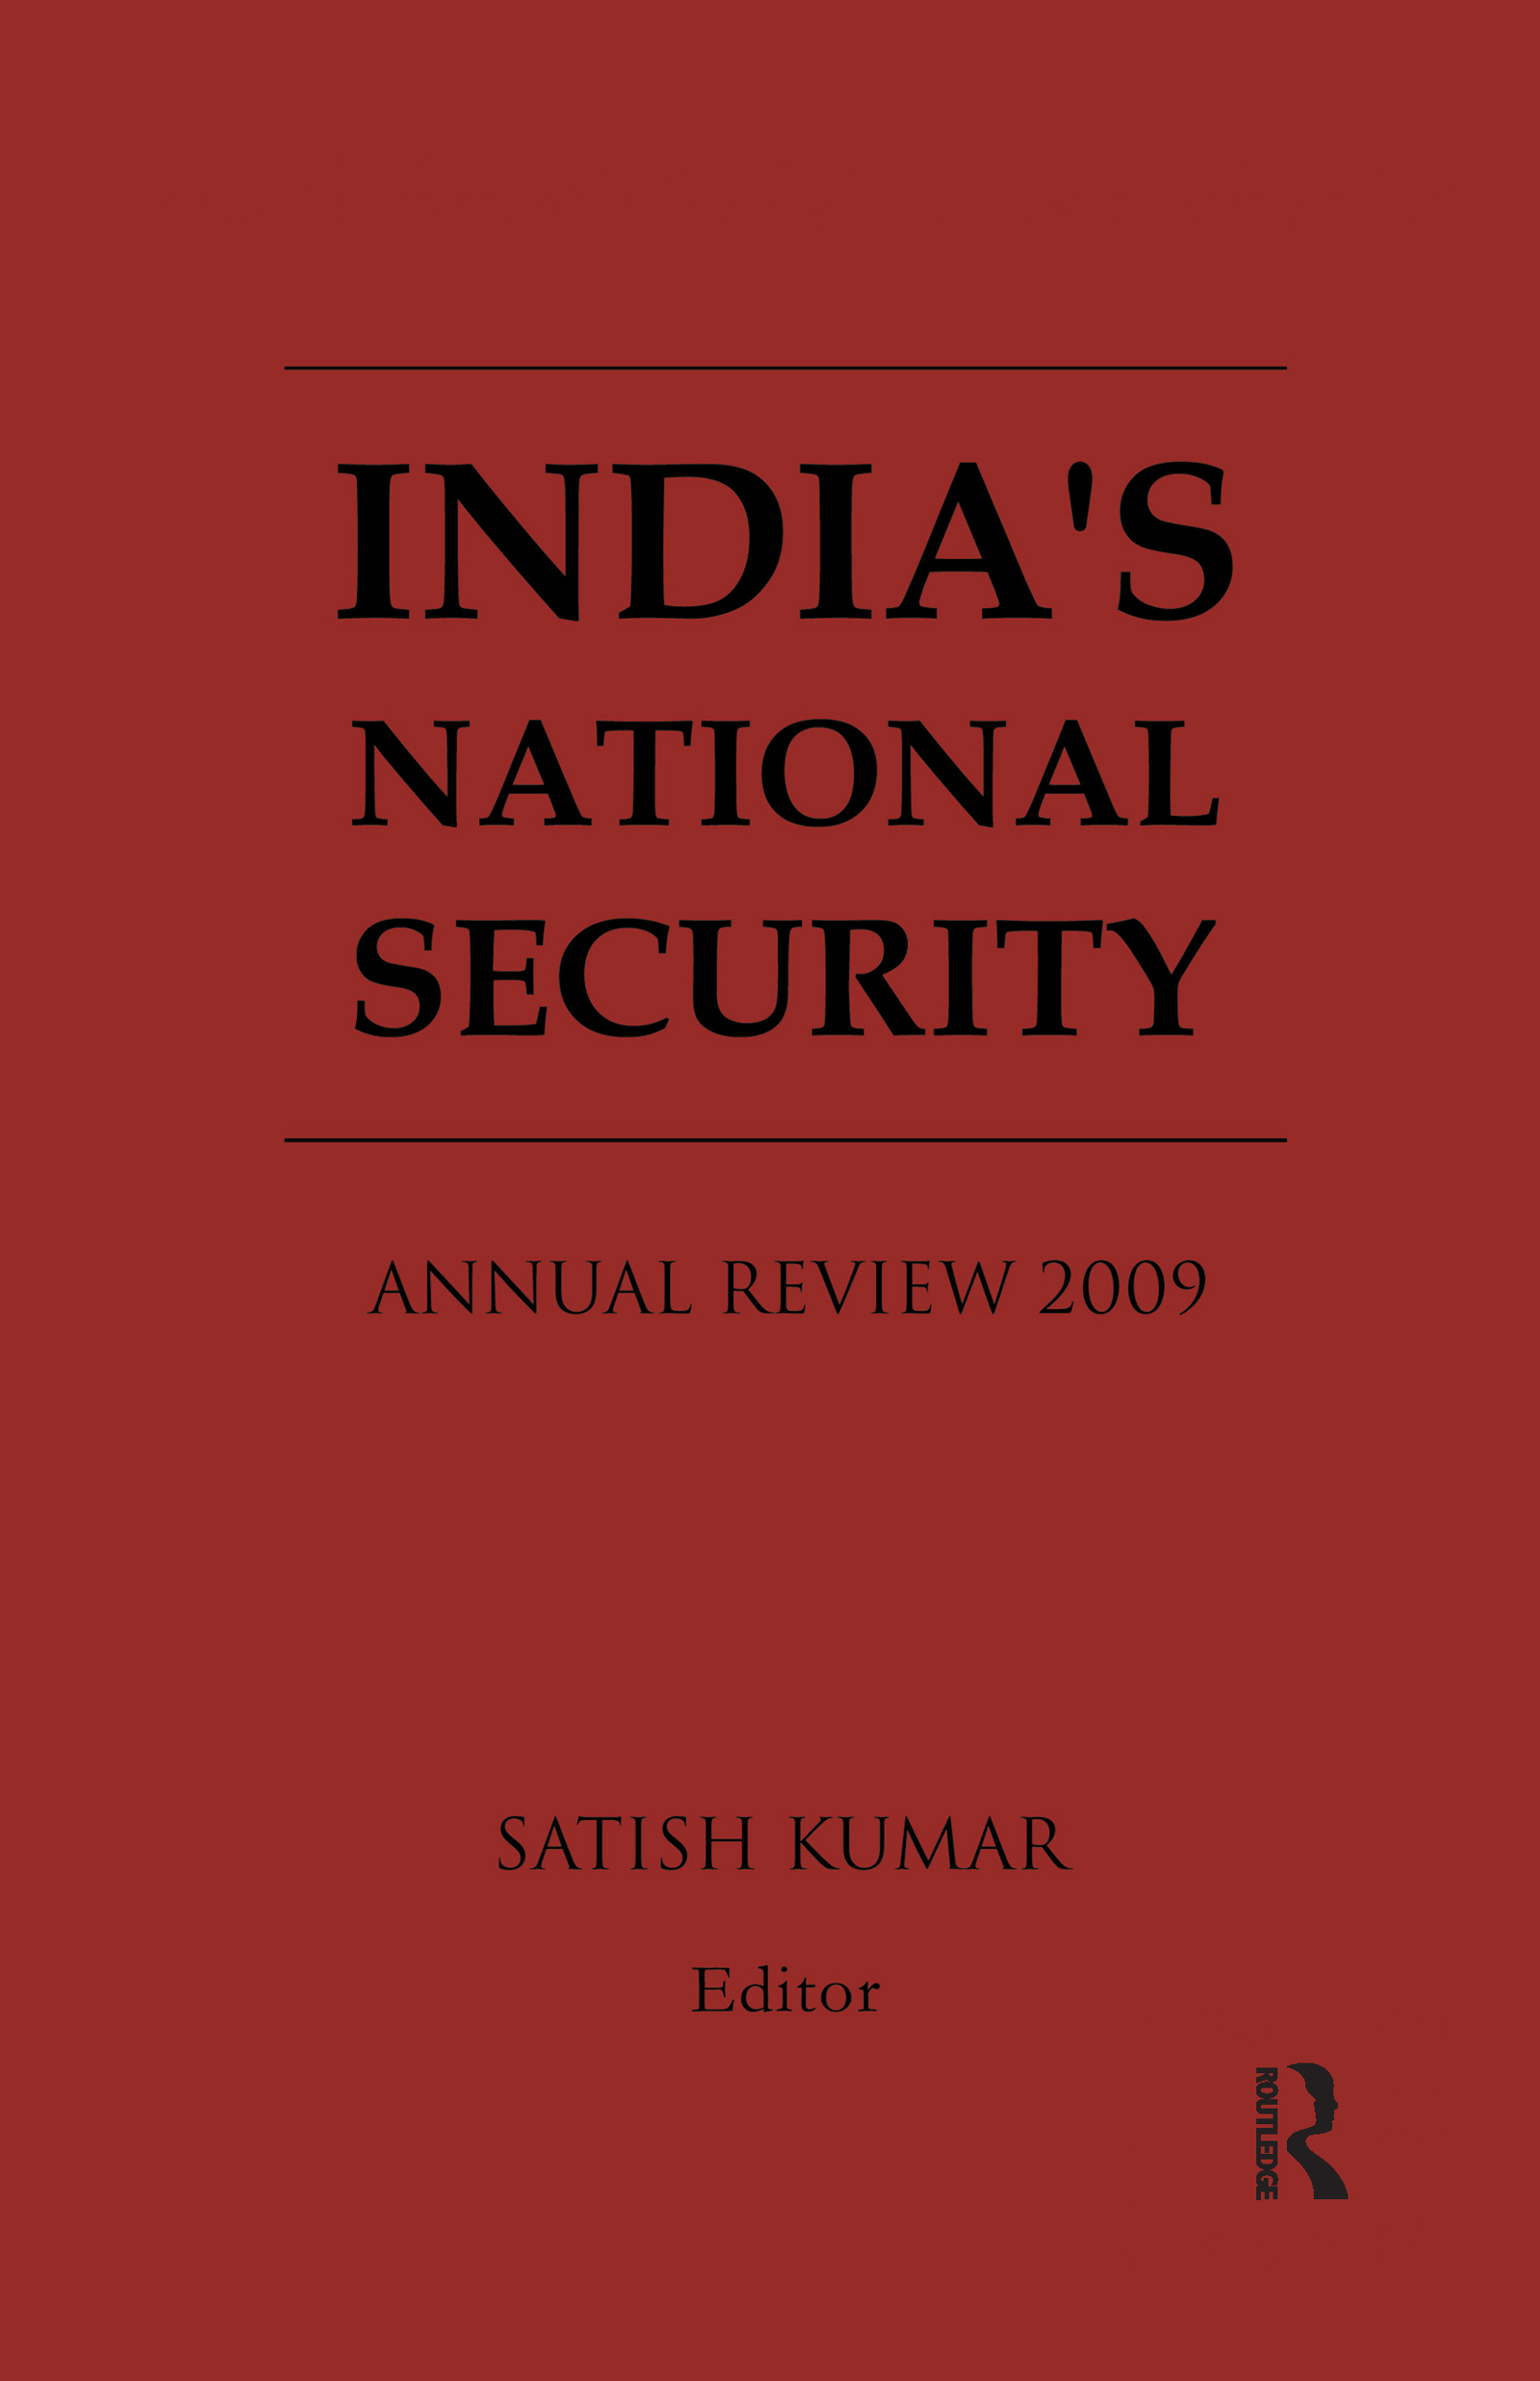 India's National Security: Annual Review 2009, 1st Edition (Paperback) book cover